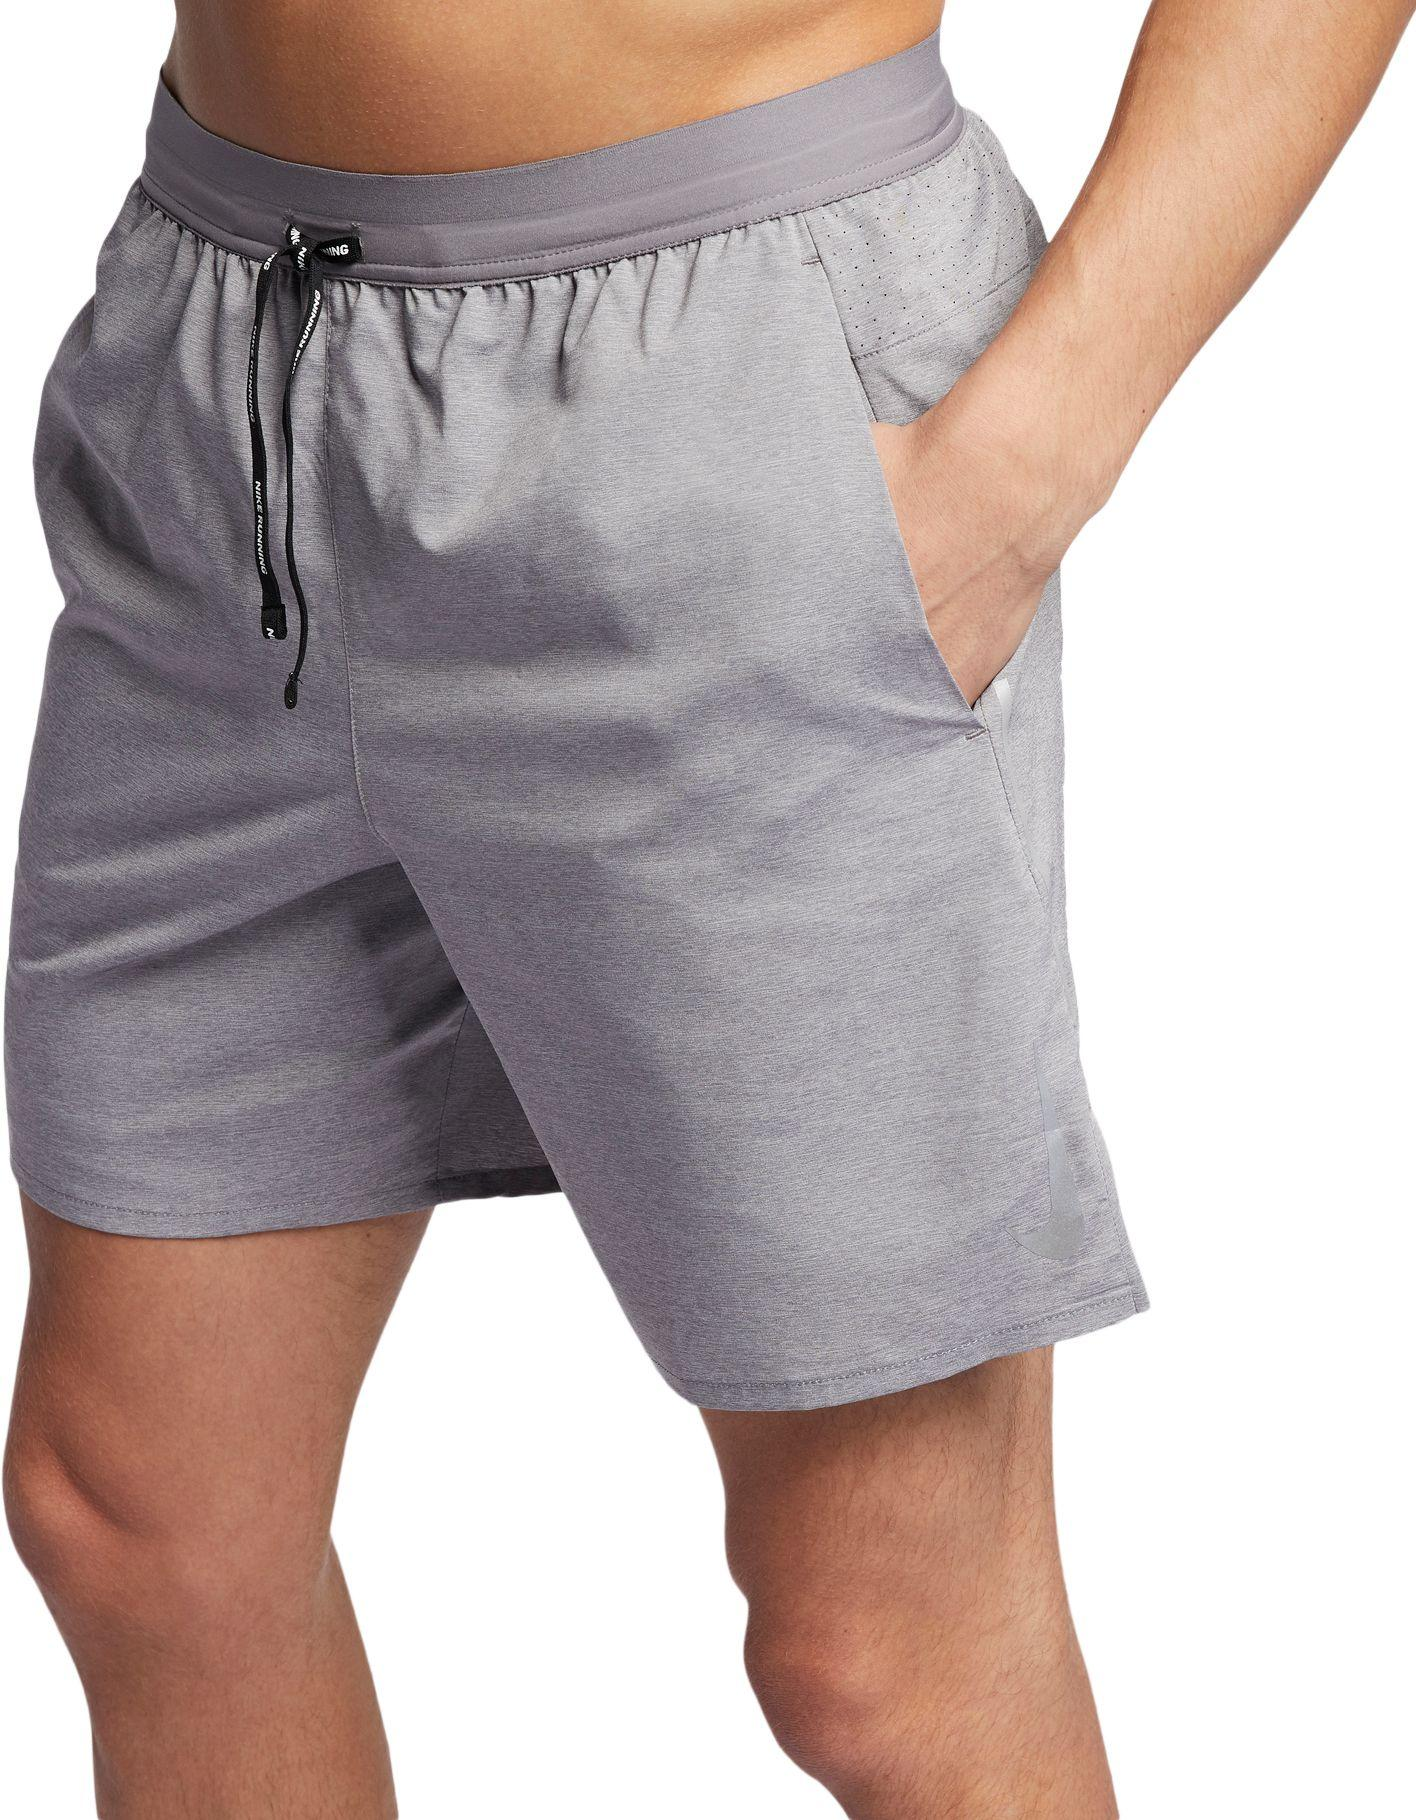 e55932000329b Lyst - Nike Flex Stride 2-in-1 Running Shorts in Gray for Men